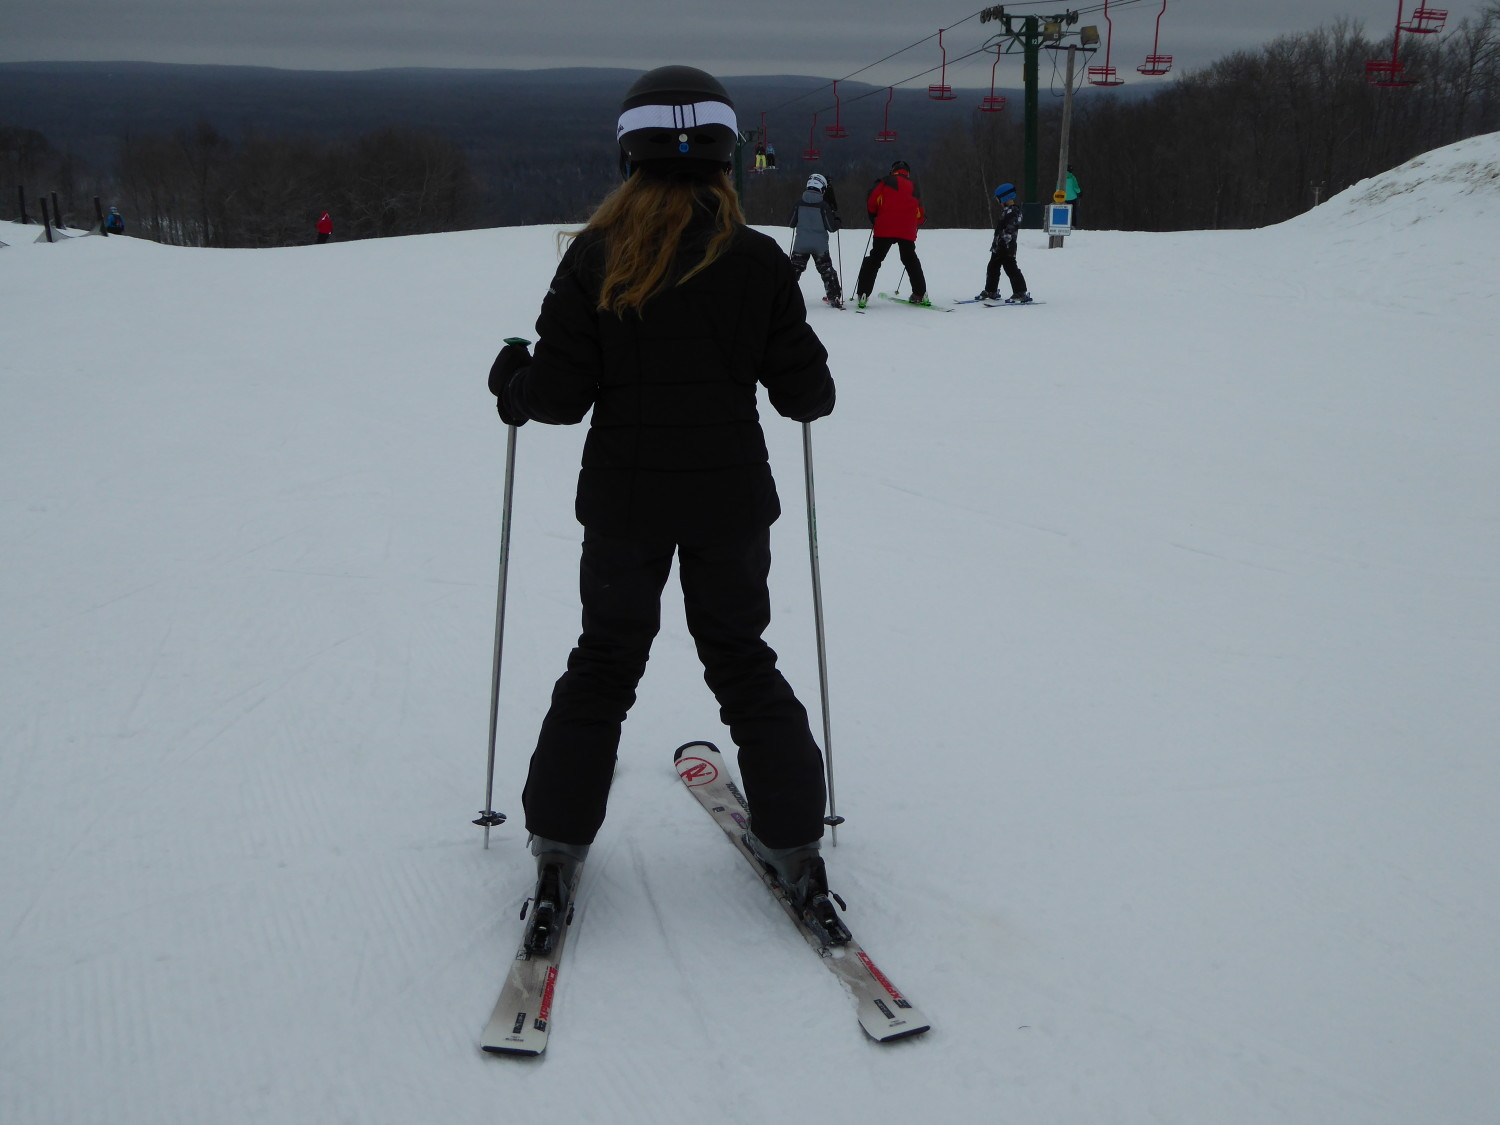 Indianhead Mountain: A Family-Friendly Ski Resort in Upper Michigan